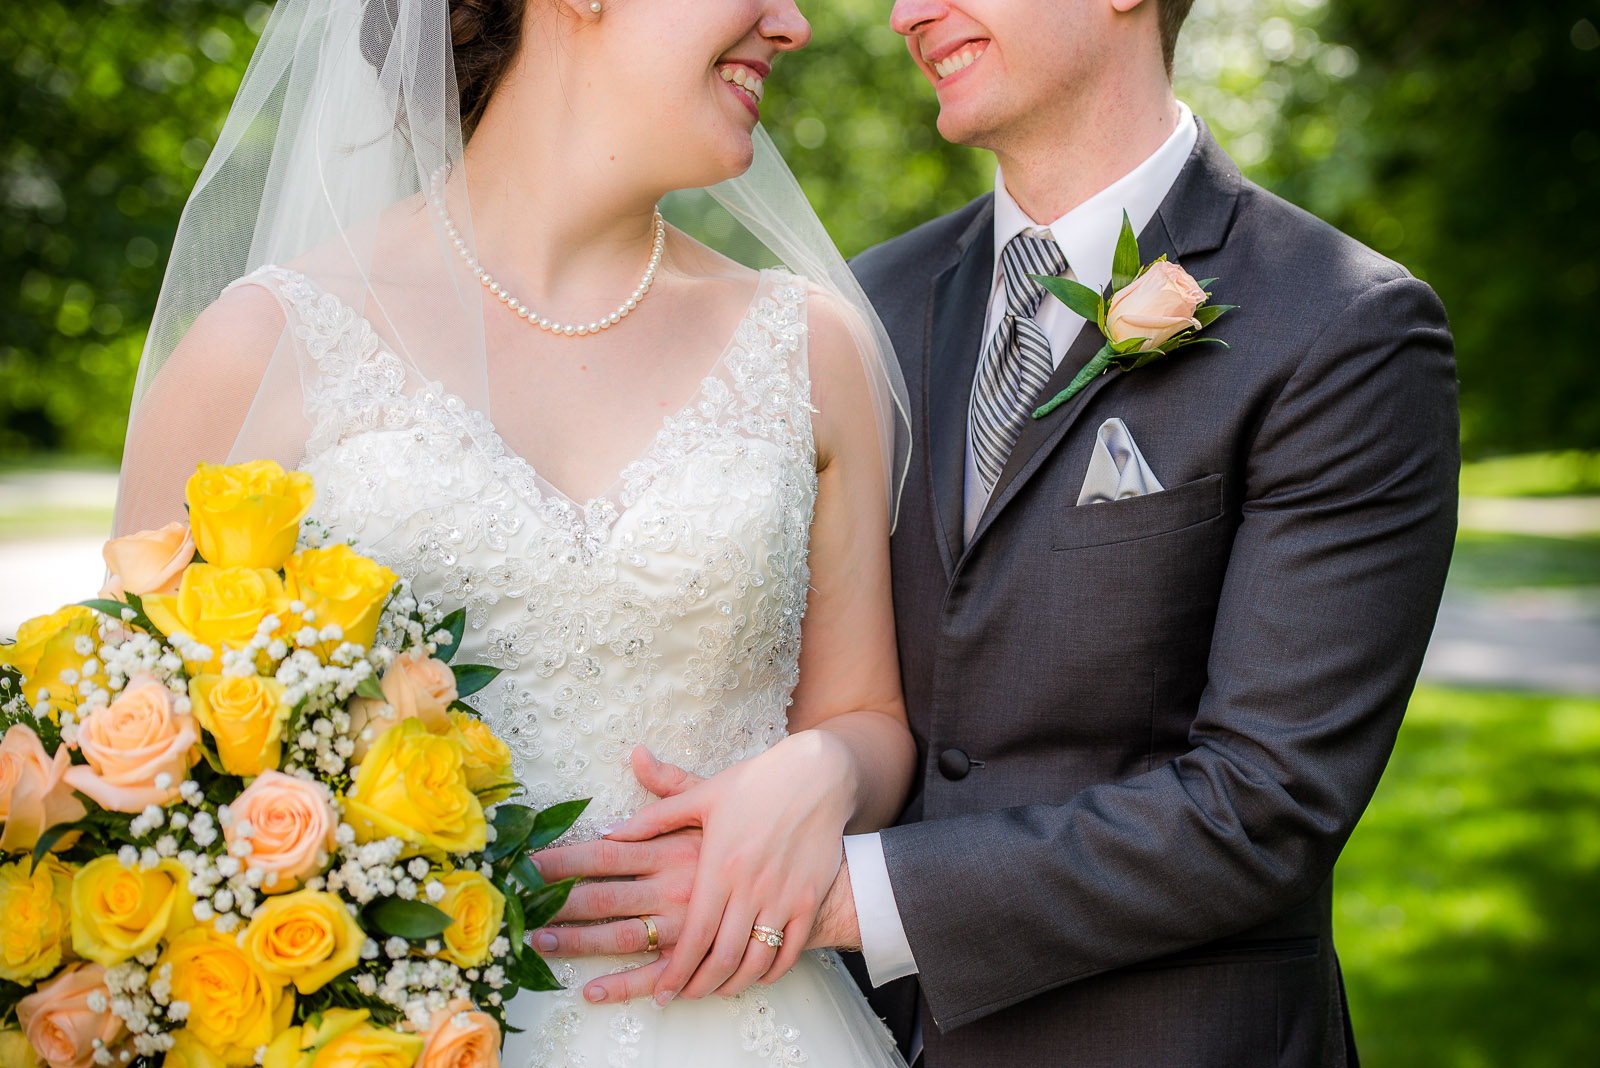 Eric_and_Christy_Photography_Blog_Wedding_Kelly_Michael-34